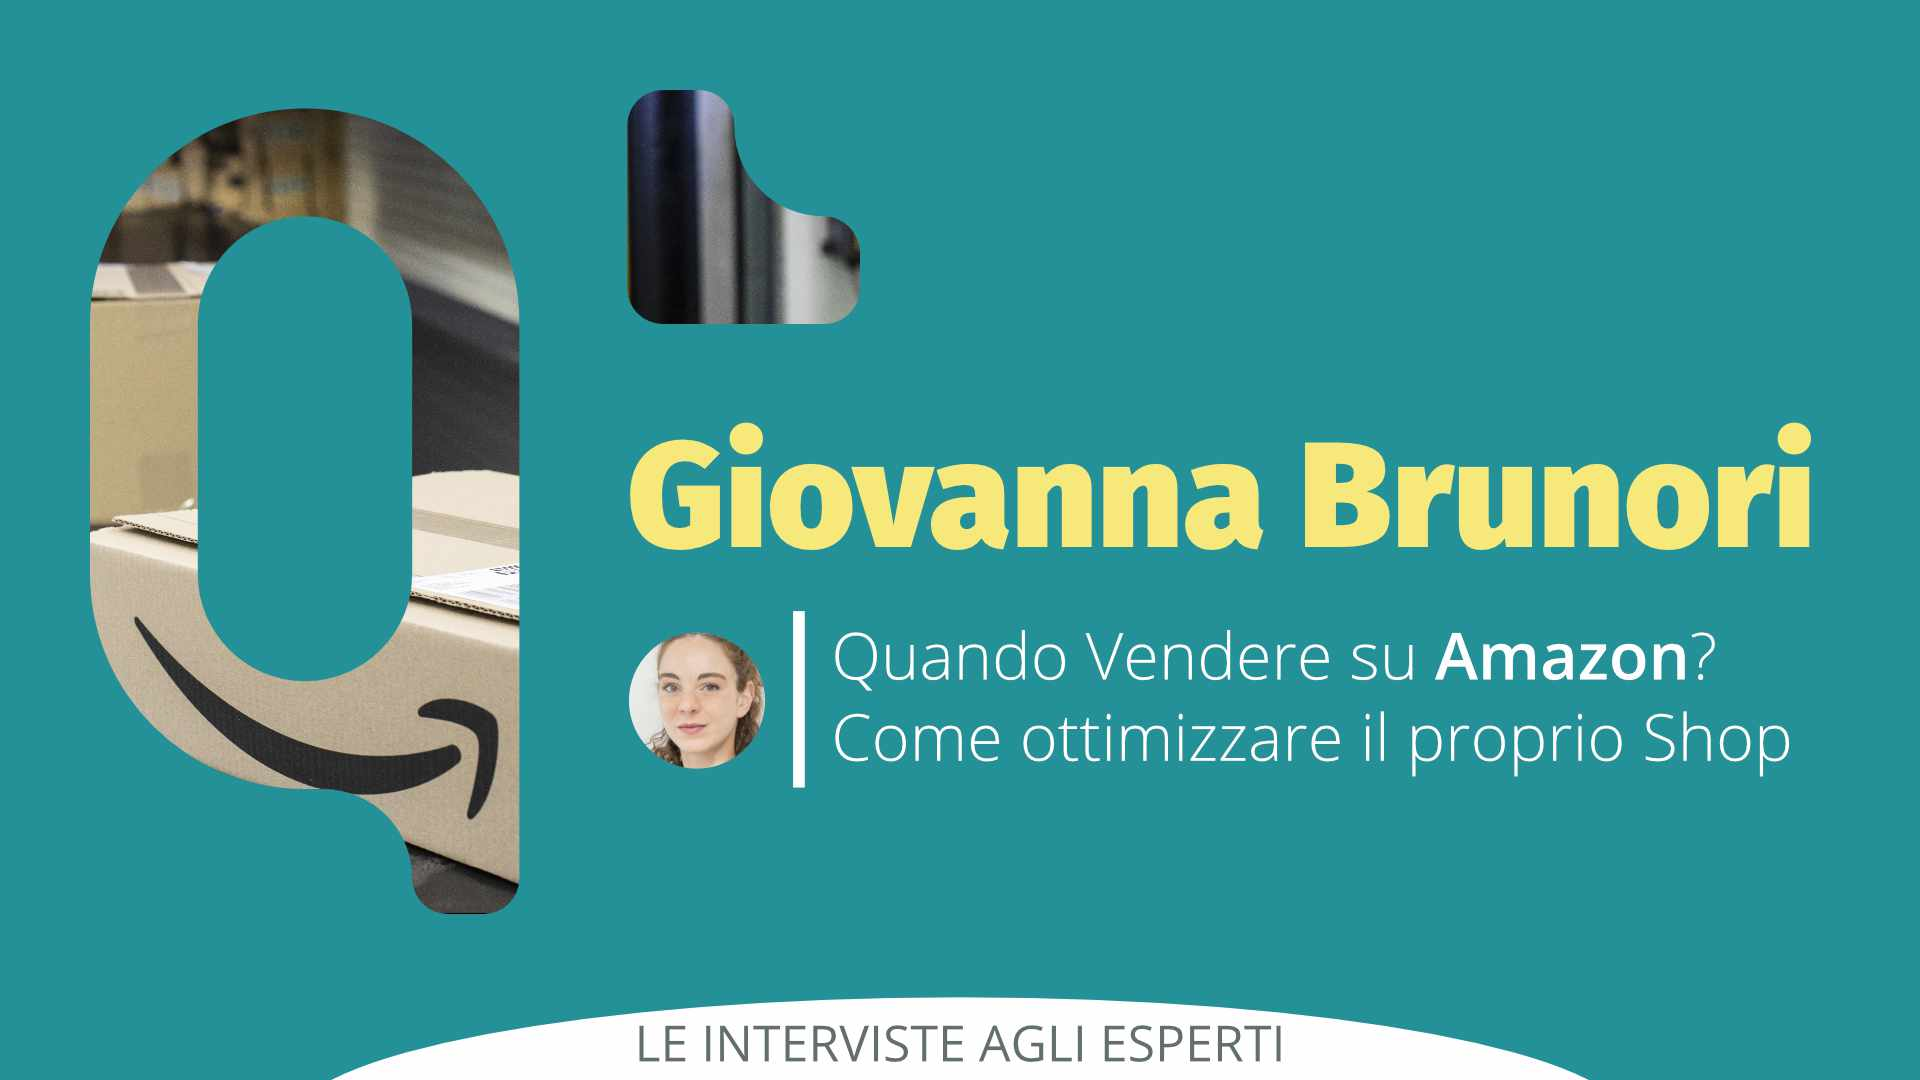 Quando Vendere su Amazon?  Intervista a Giovanna Brunori